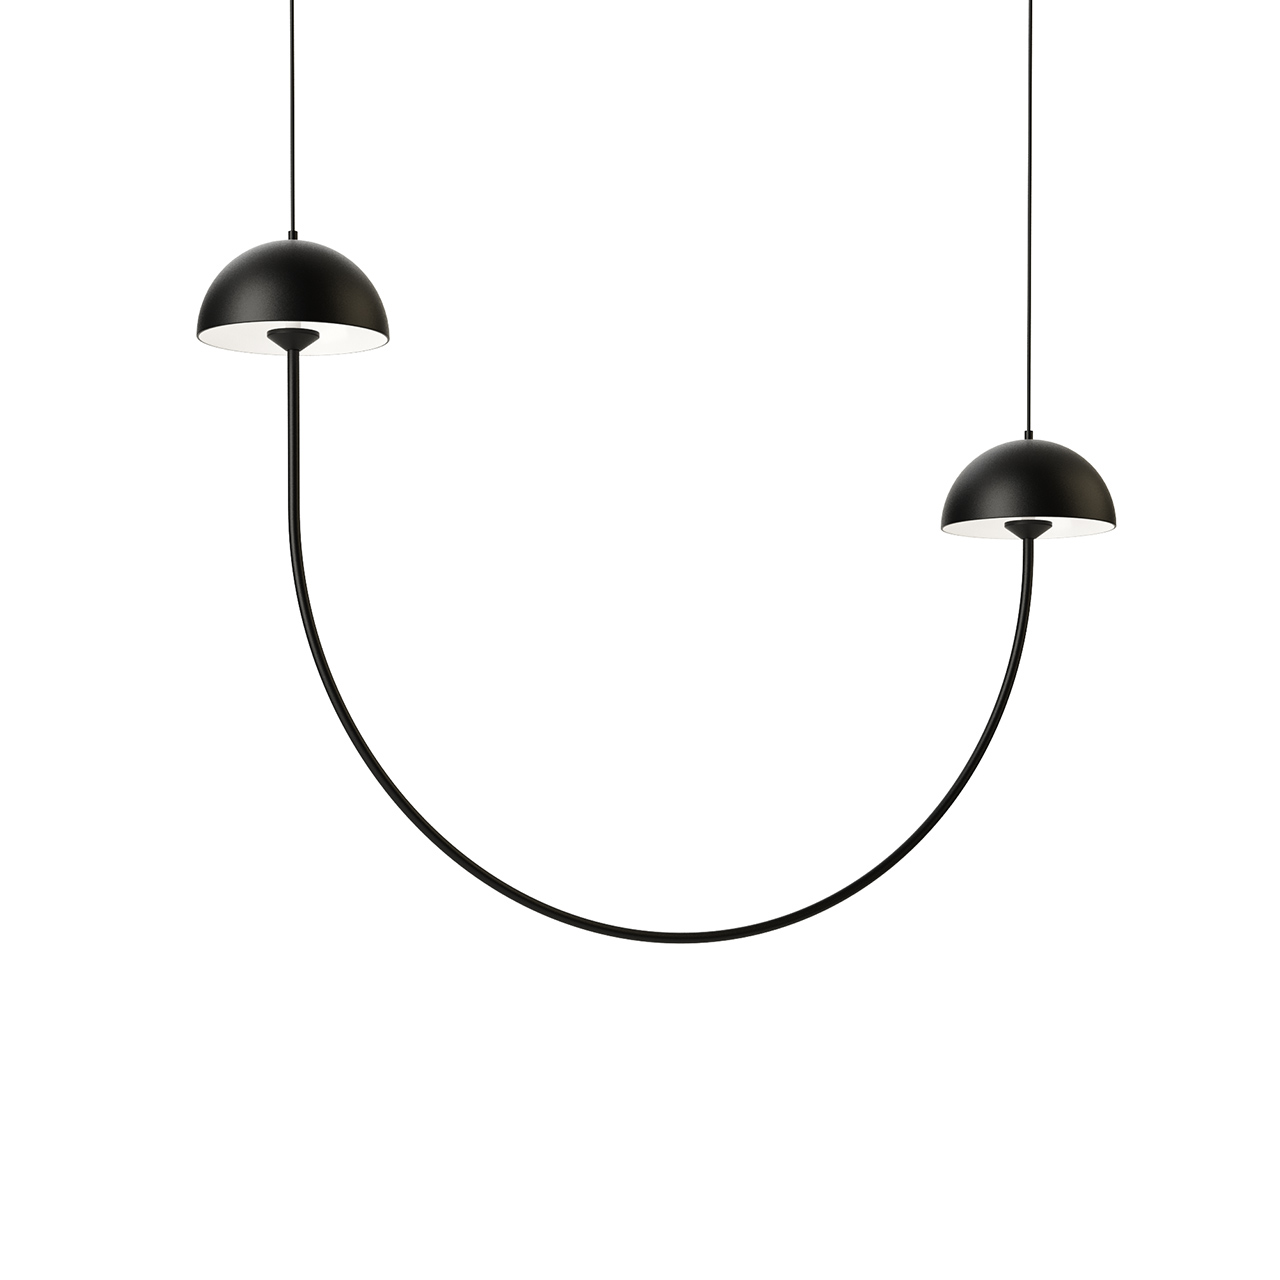 Champignon Pendant Light by Luxcambra